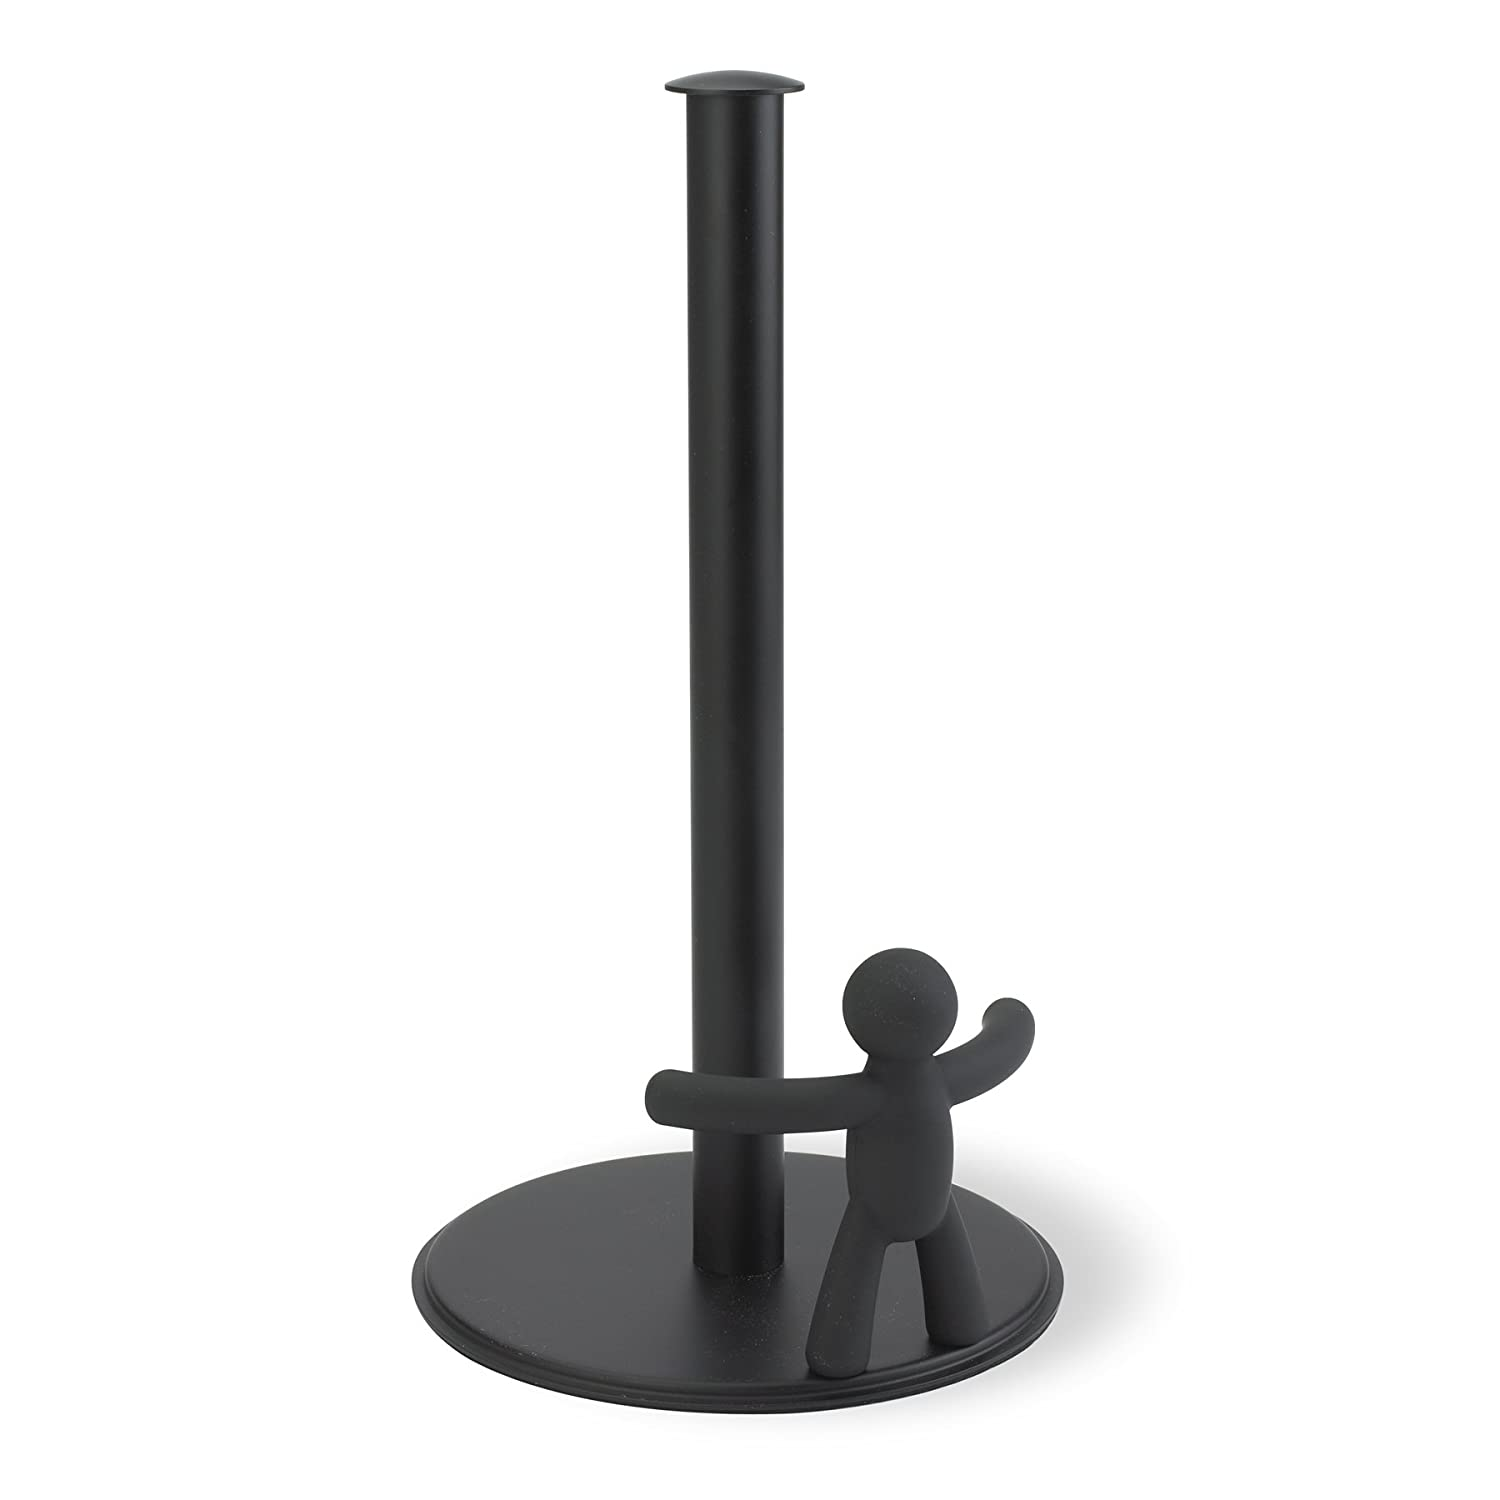 Umbra Buddy Paper Towel Holder, Black 330280-040